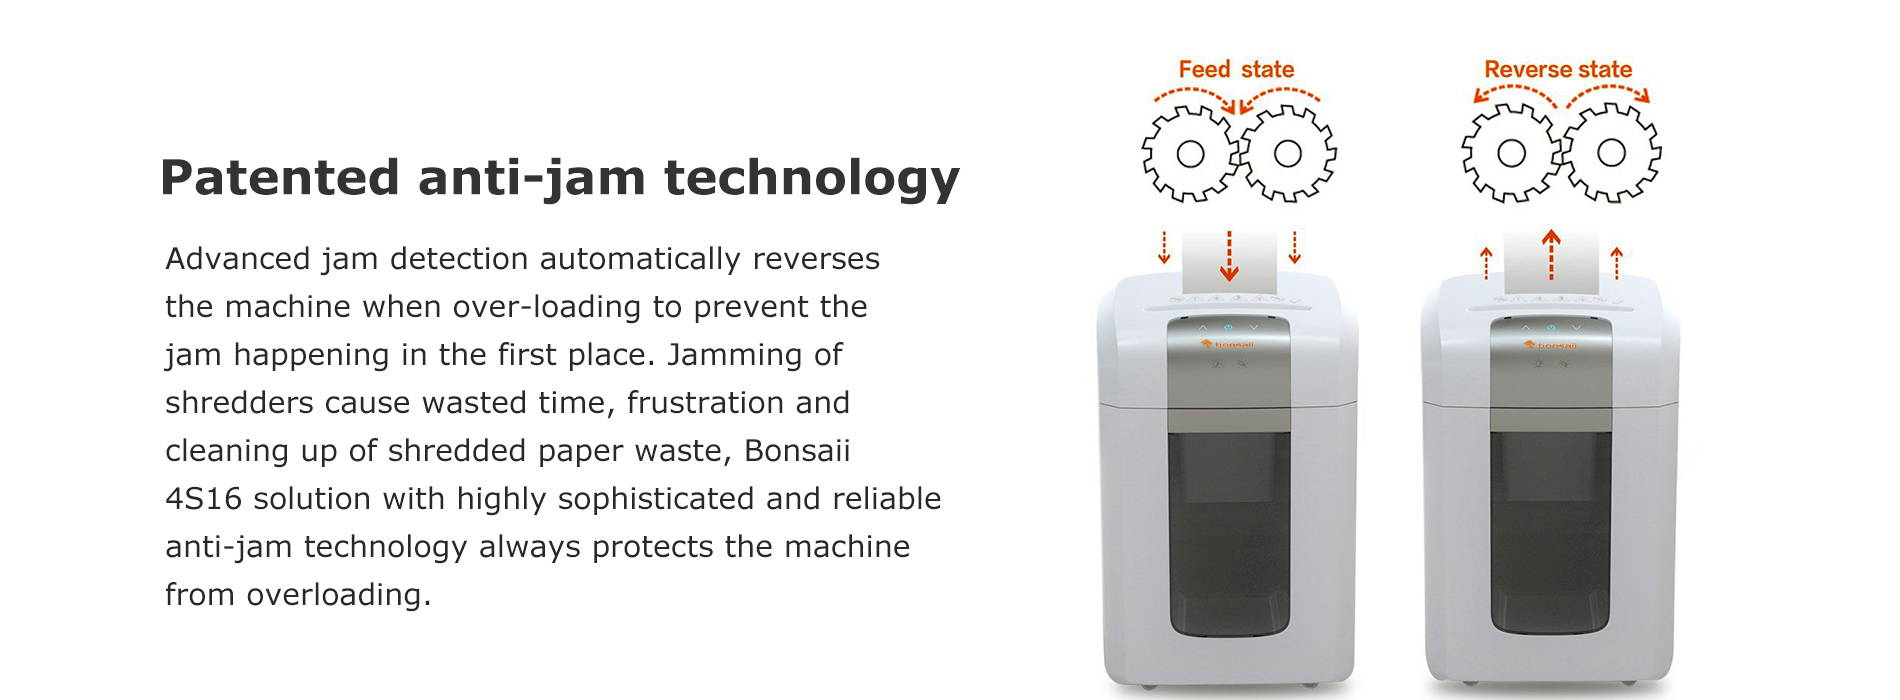 Patented anti-jam technology Advanced jam detection automatically reverses the machine when over-loading to prevent the jam happening in the first place. Jamming of shredders cause wasted time, frustration and cleaning up of shredded paper waste, Bonsaii 4S16 solution with highly sophisticated and reliable anti-jam technology always protects the machine from overloading.